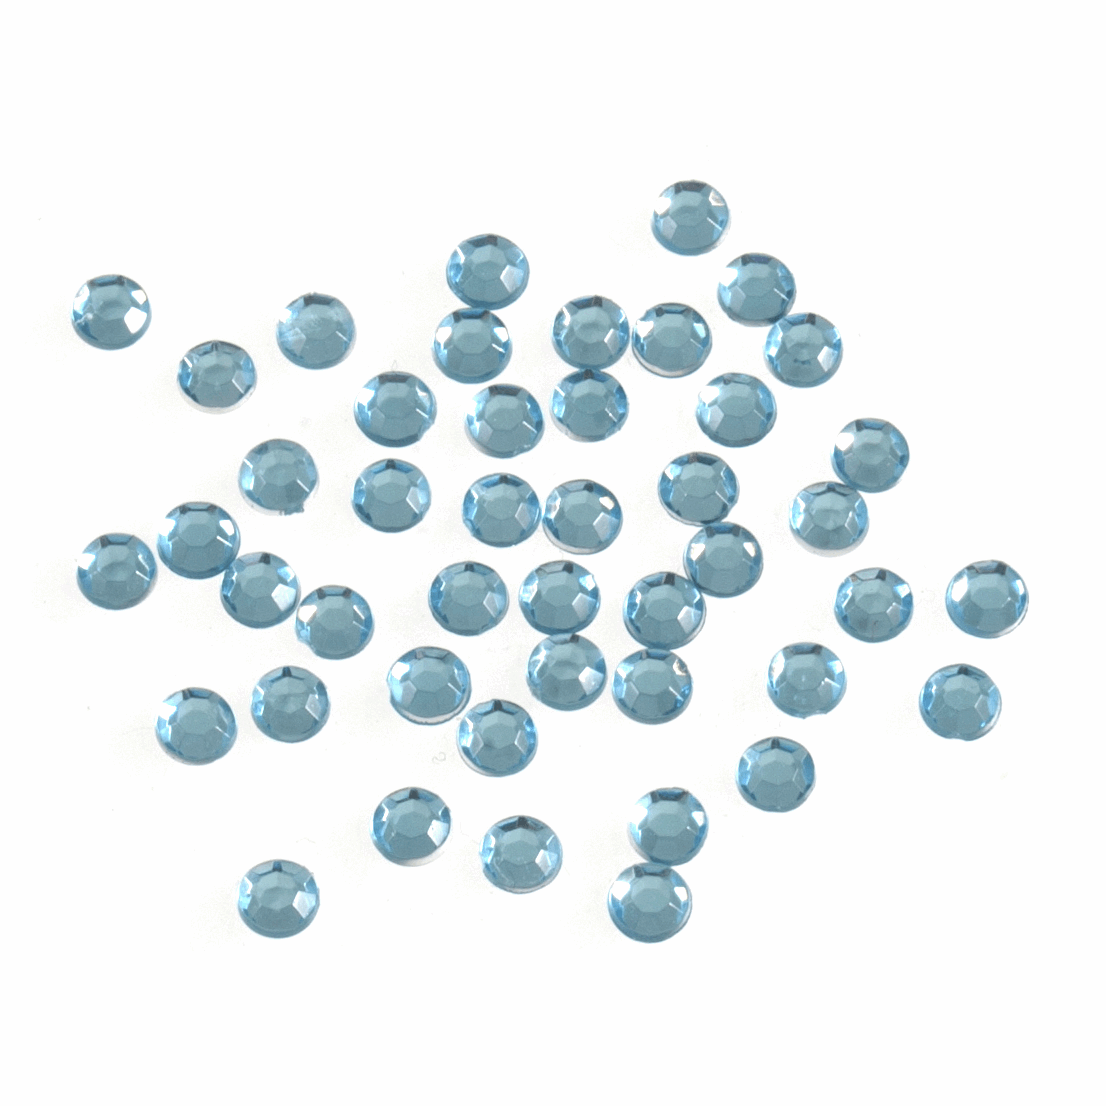 Picture of Acrylic Stones: Glue-On: Round: Small-4mm: Blue